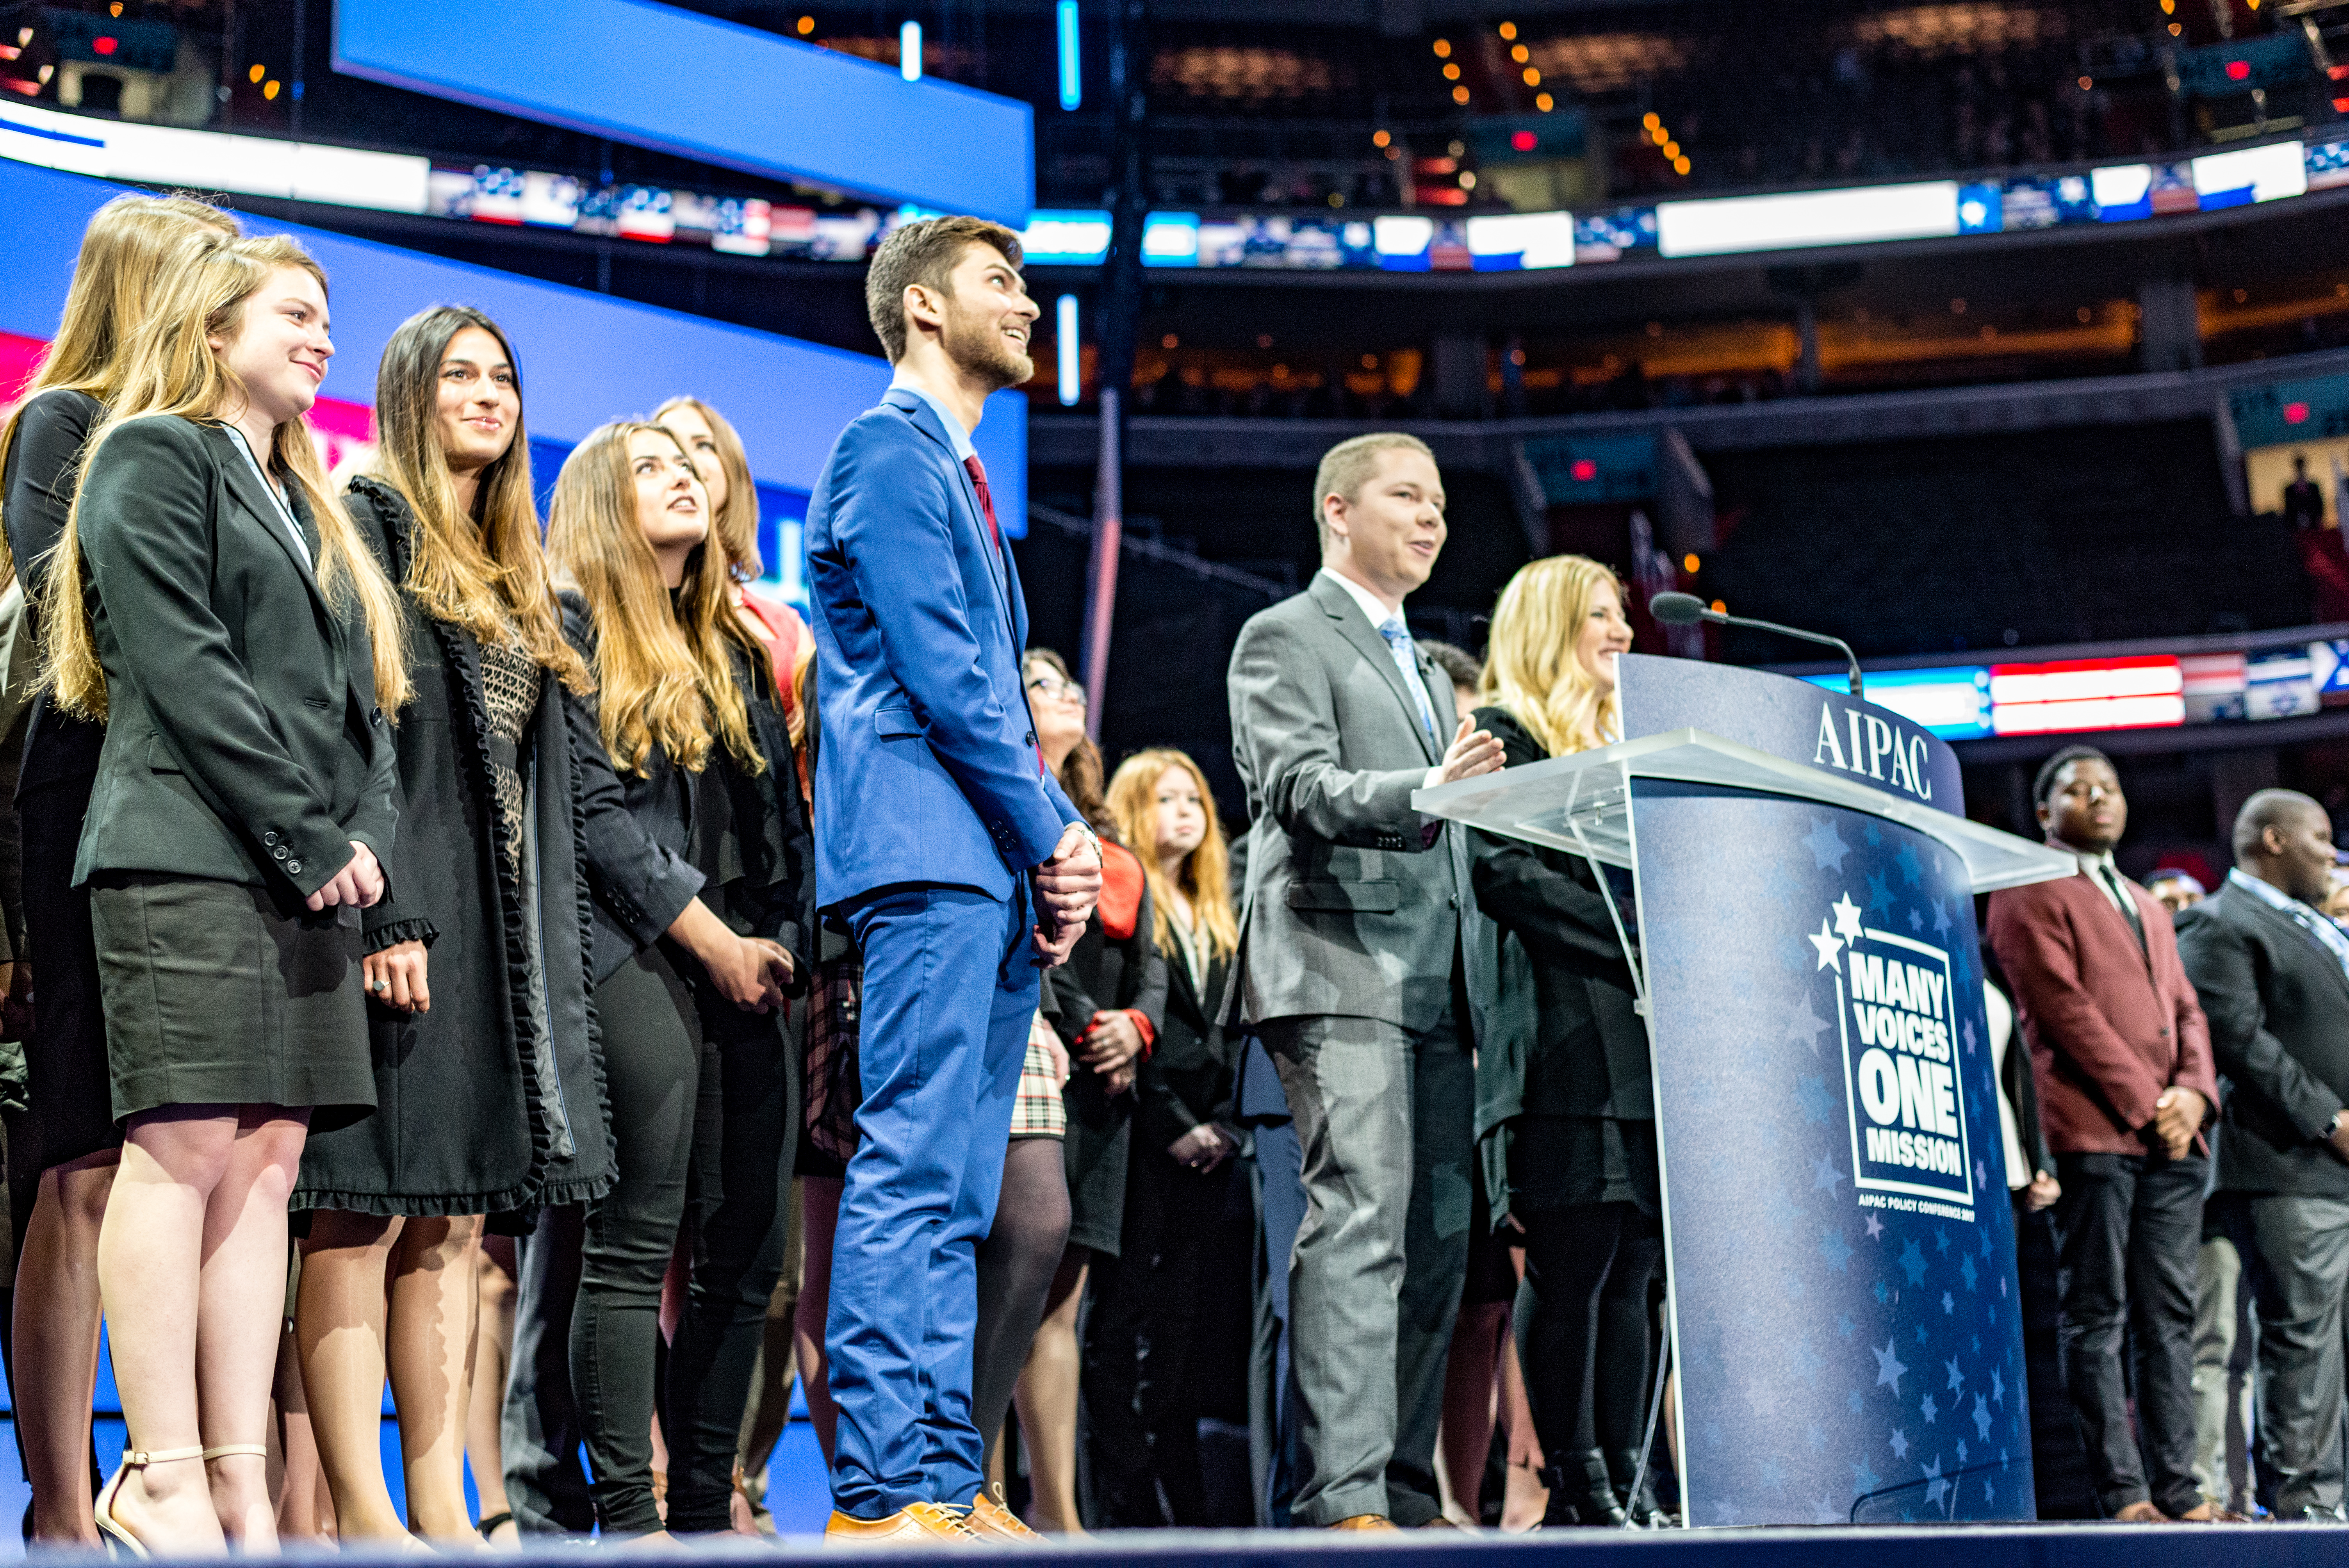 Students from Florida State University accept an award at the 2017 AIPAC Policy Conference.